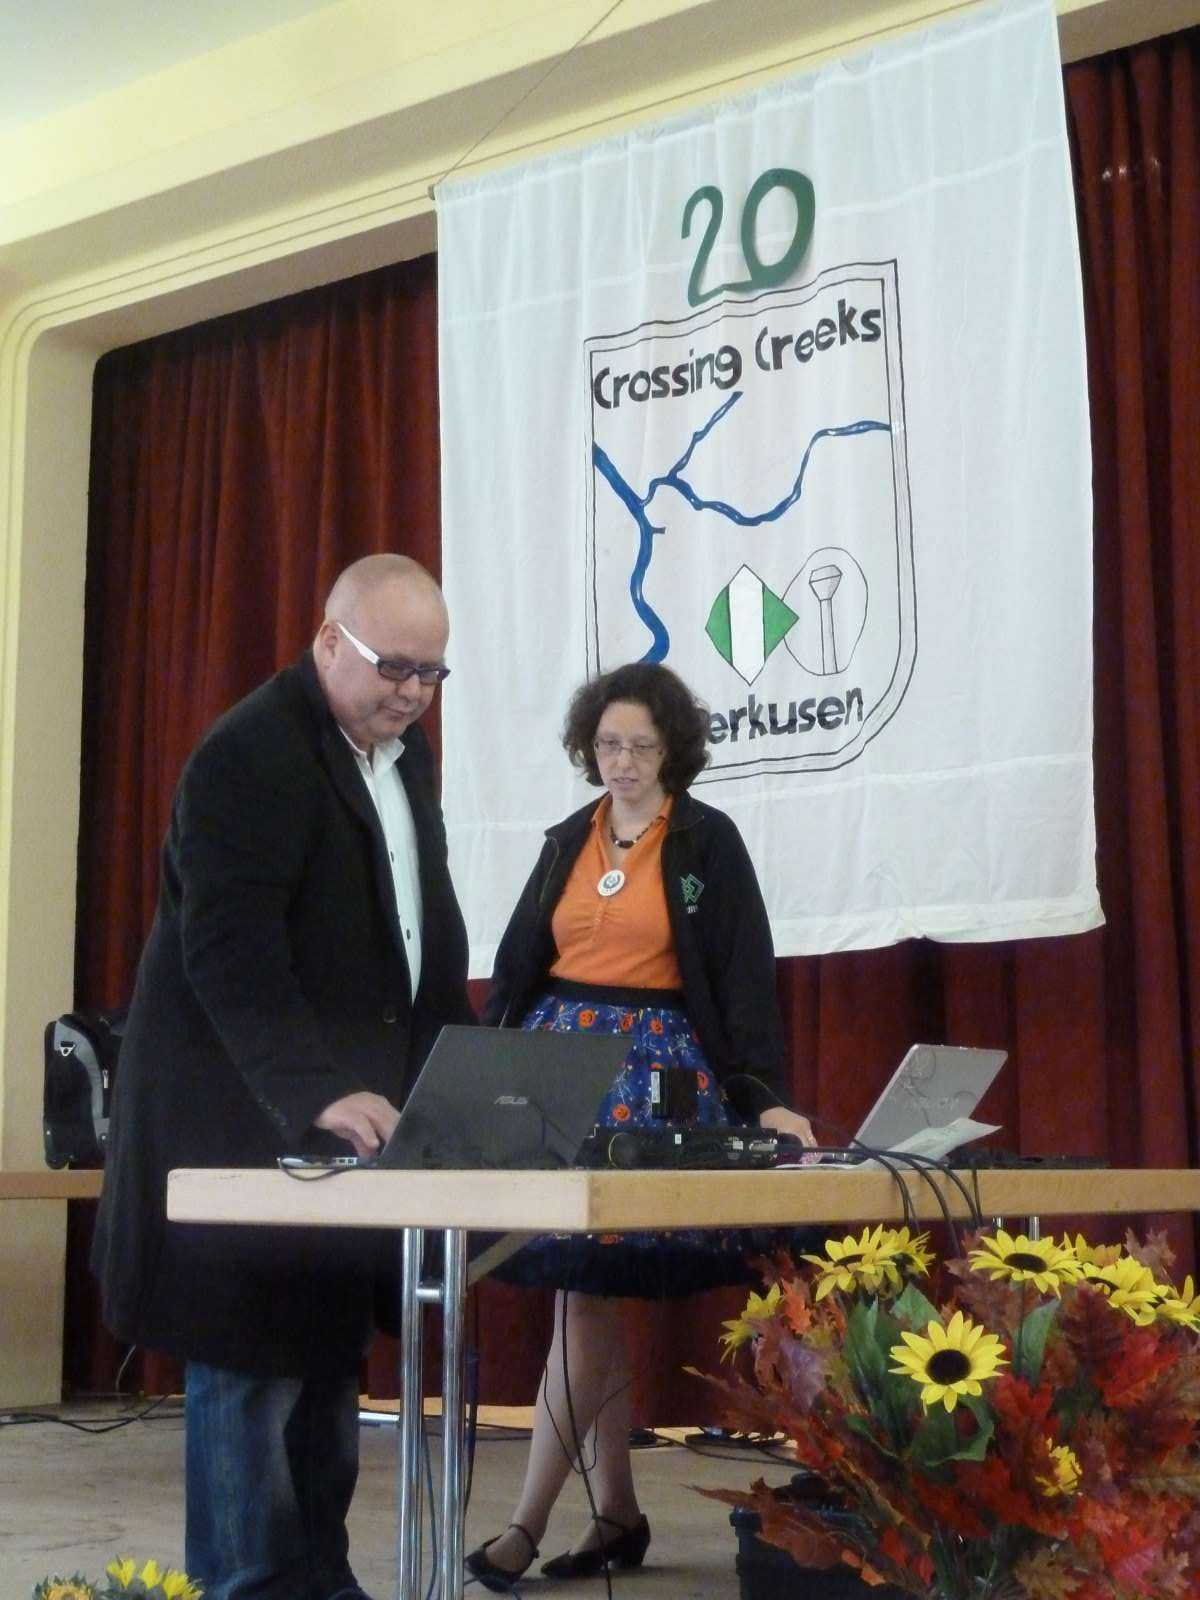 20 Jahre Crossing Creeks_CCL11_27.10.`12